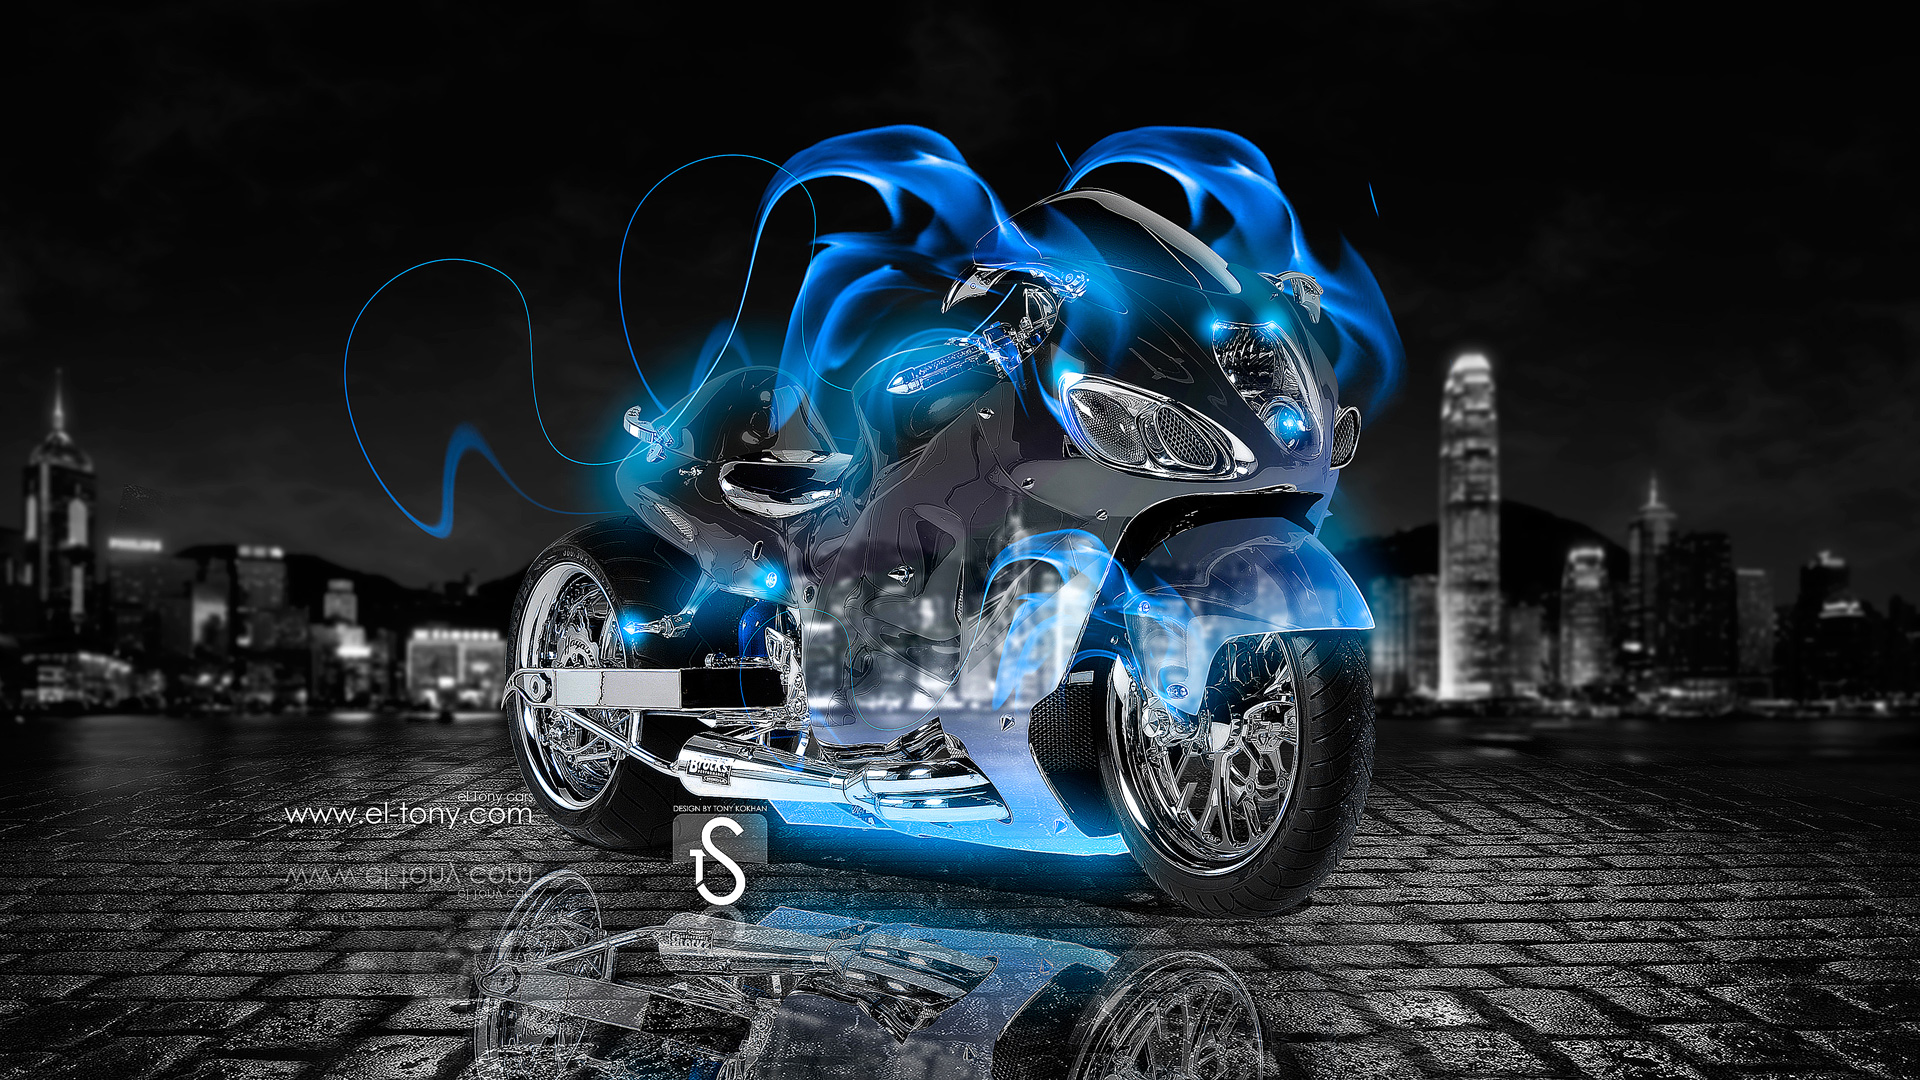 Suzuki Hayabusa Fantasy Animal Bike 2014 | El Tony